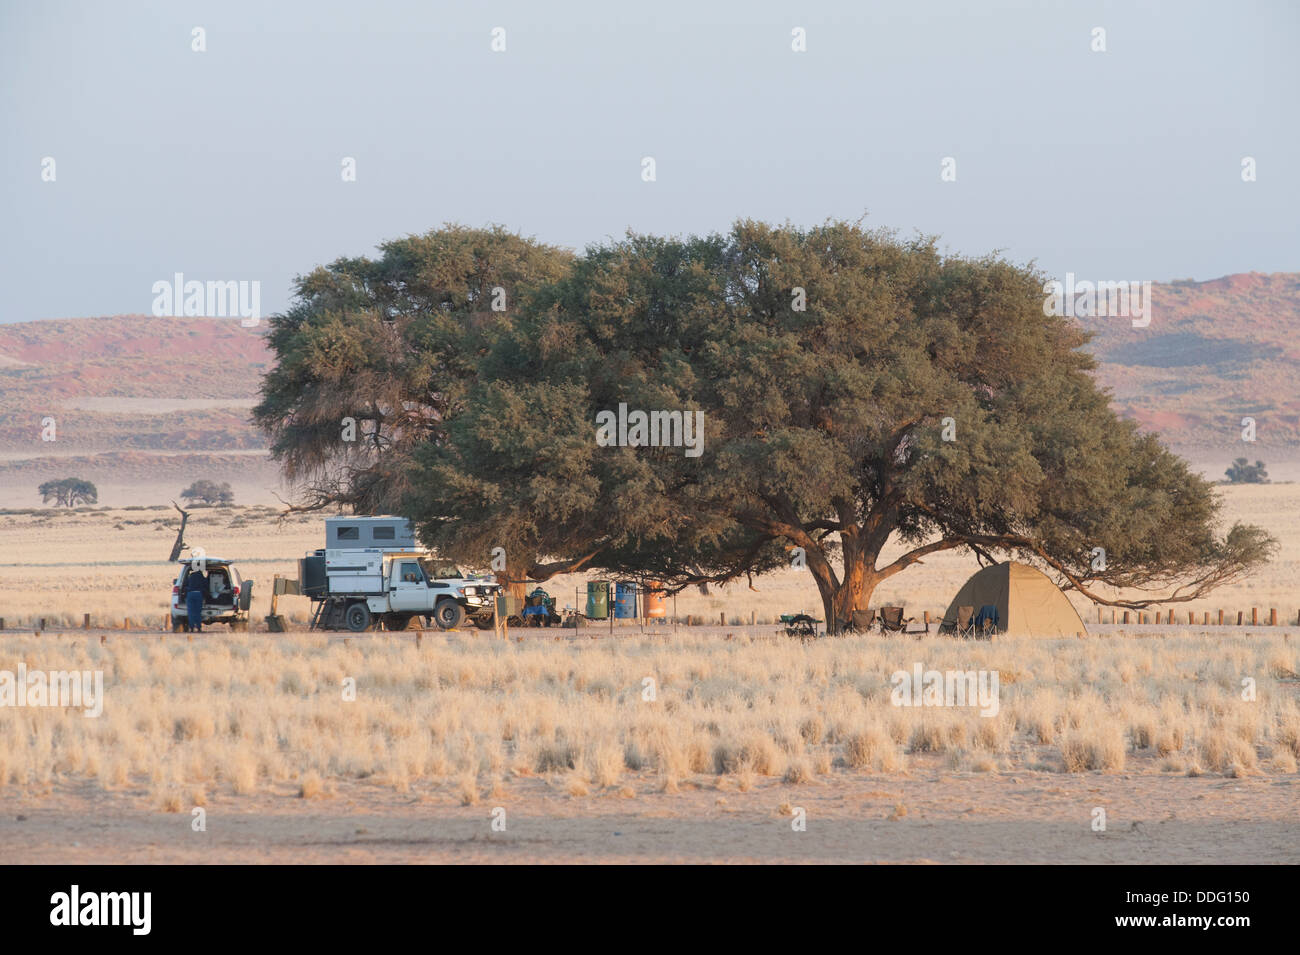 Camper vehicles and tent under trees, Sesriem campsite, Khomas region, Namibia - Stock Image